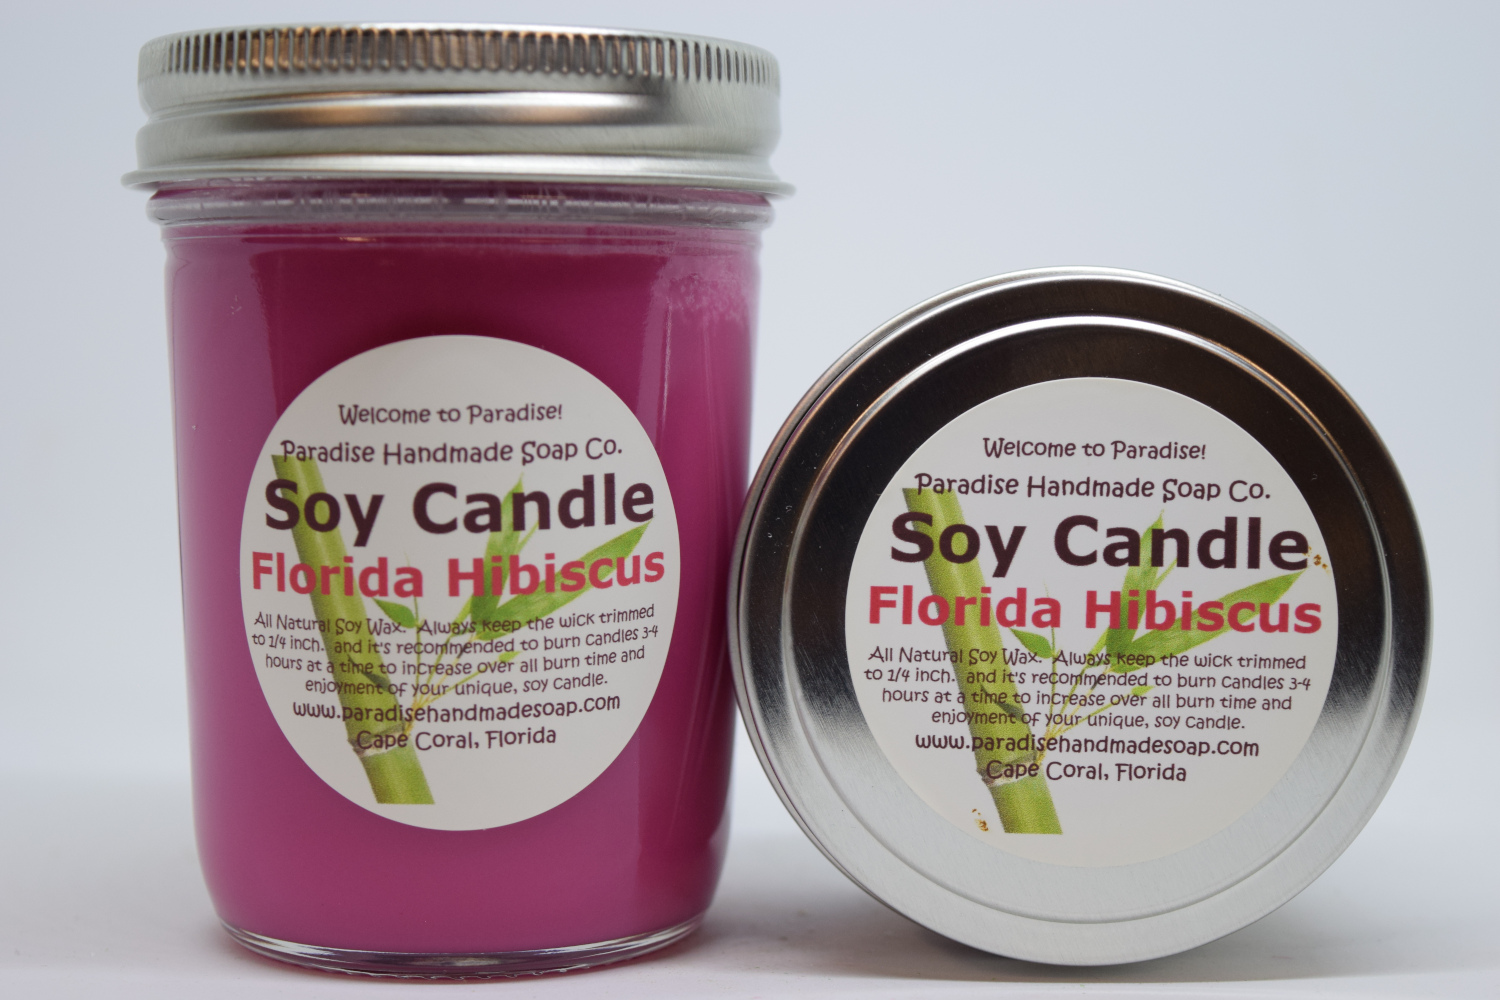 Florida Hibiscus Candle